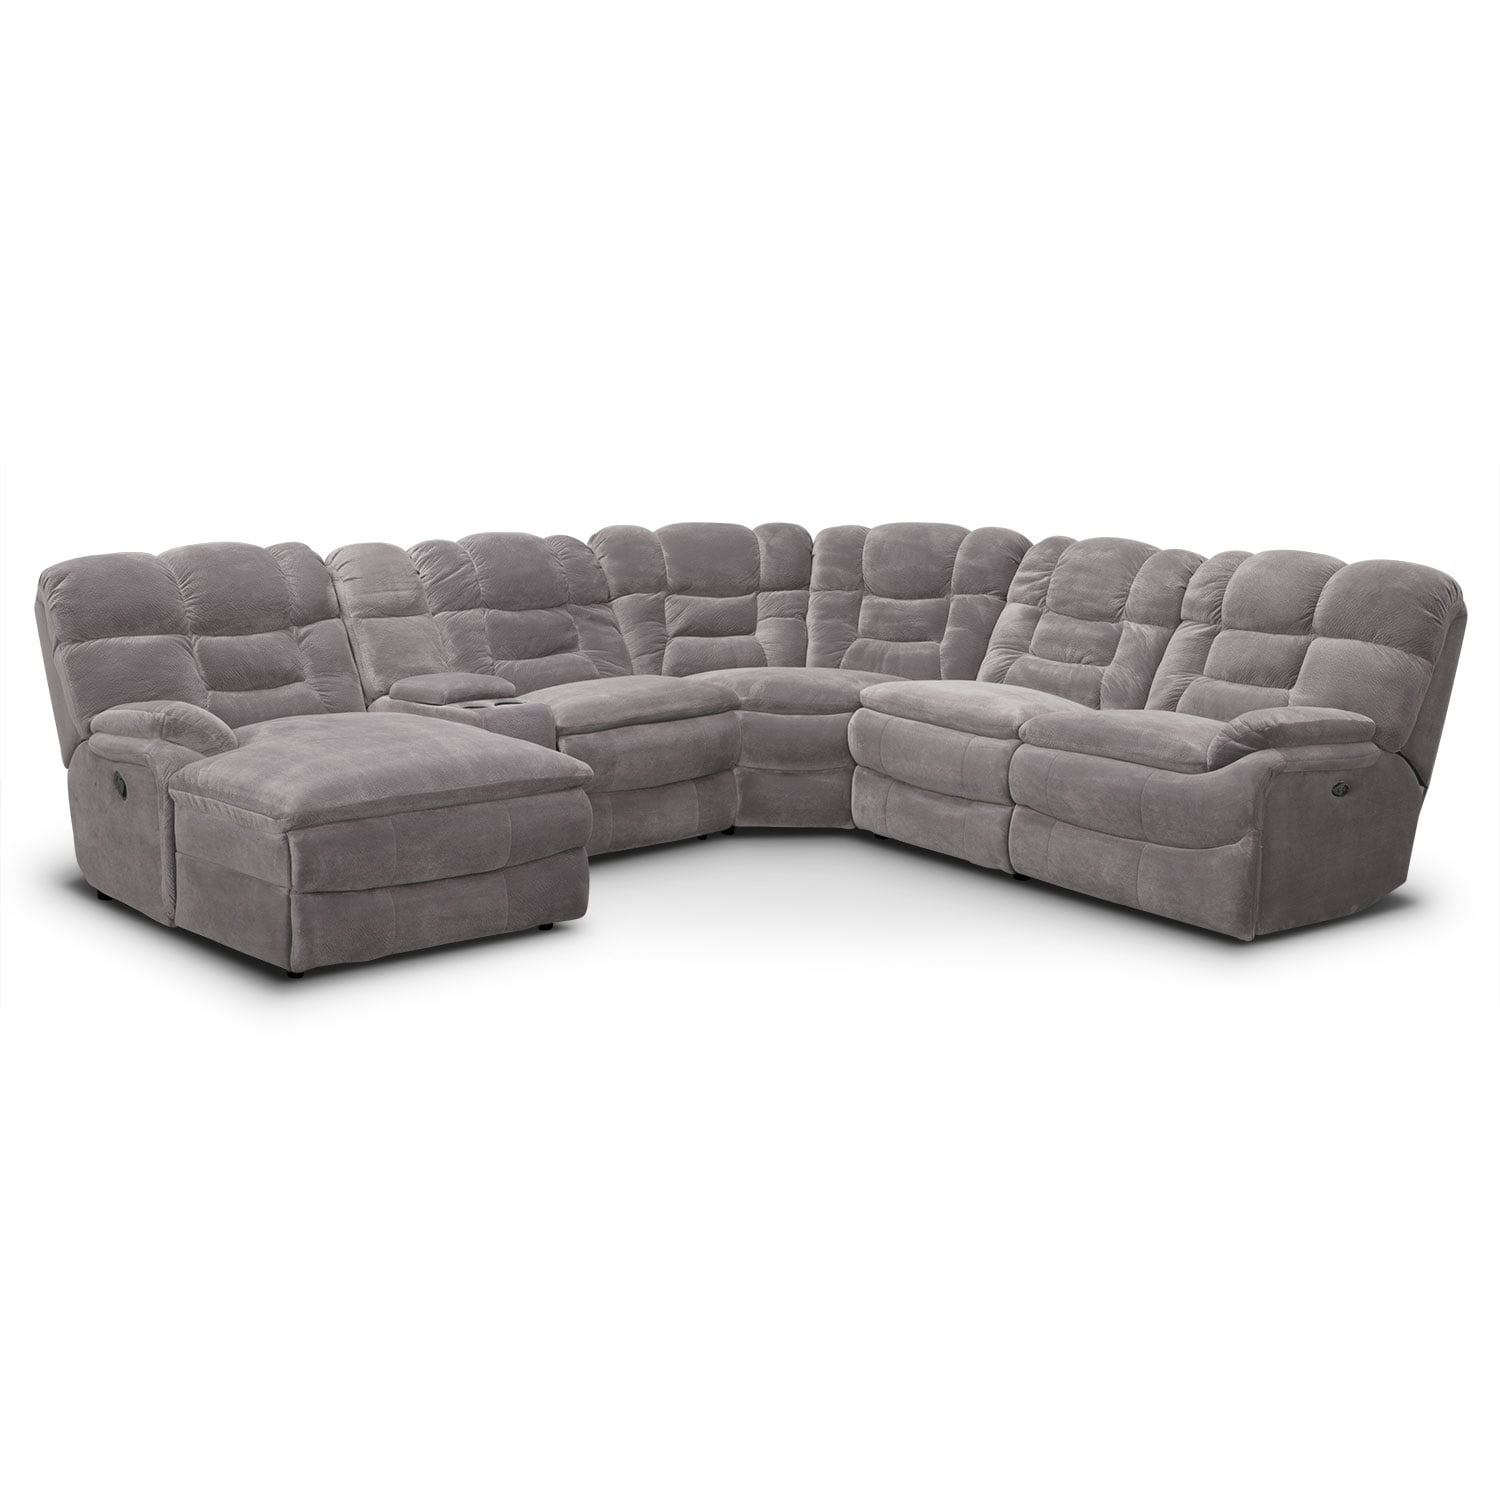 Living Room Furniture - Big Softie 7-Piece Dual-Power Reclining Sectional with Chaise and 2 Reclining Seats